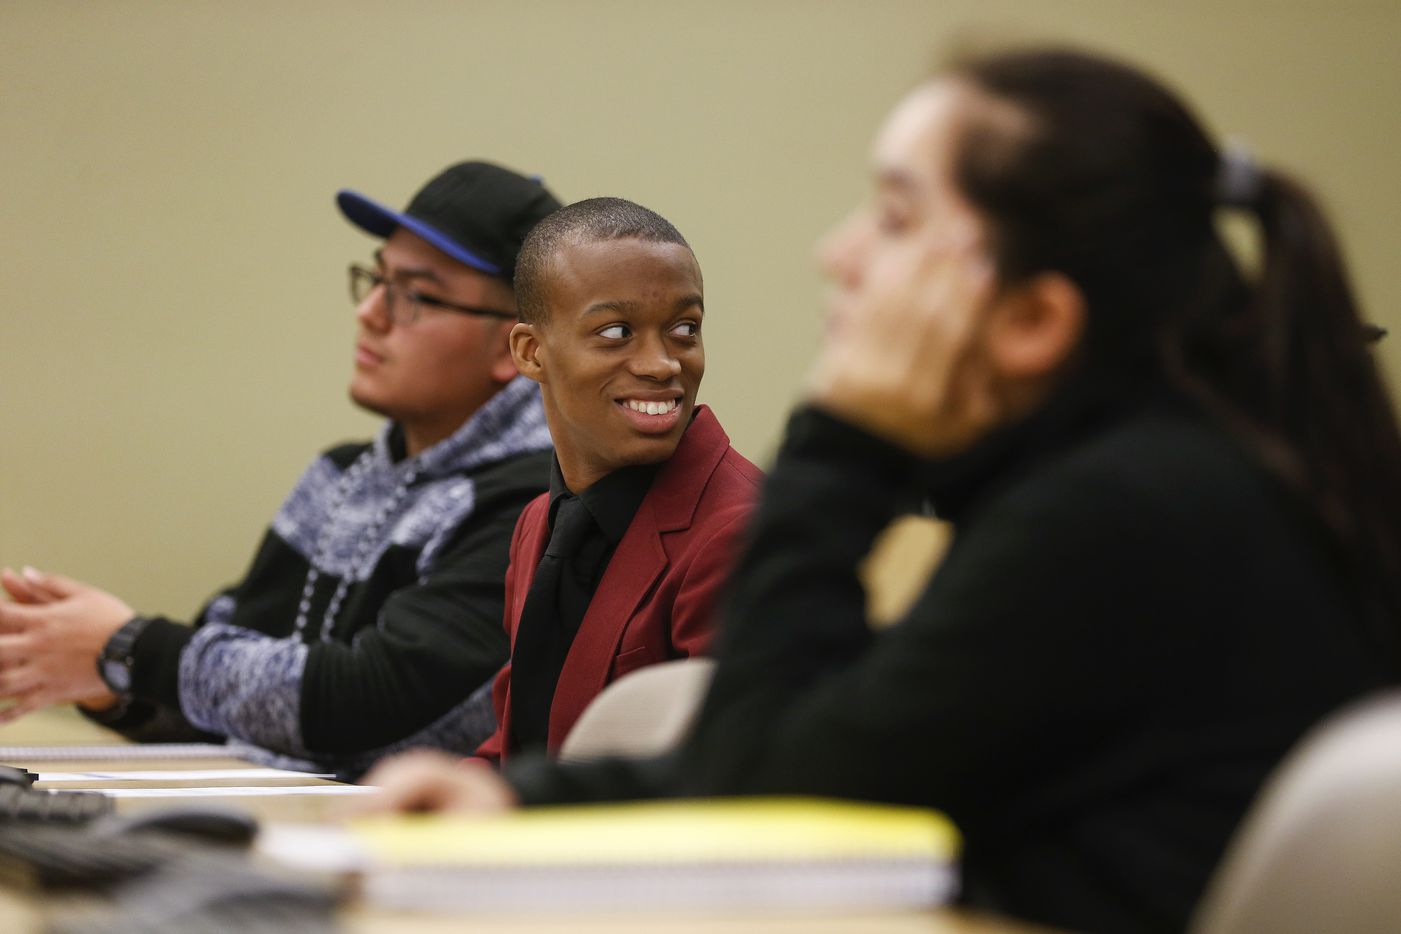 Jaylon Miller looks over his shoulder to his teacher during an computer operating systems class at the University of North Texas at Dallas on Wednesday, Jan. 29, 2020 in Dallas.